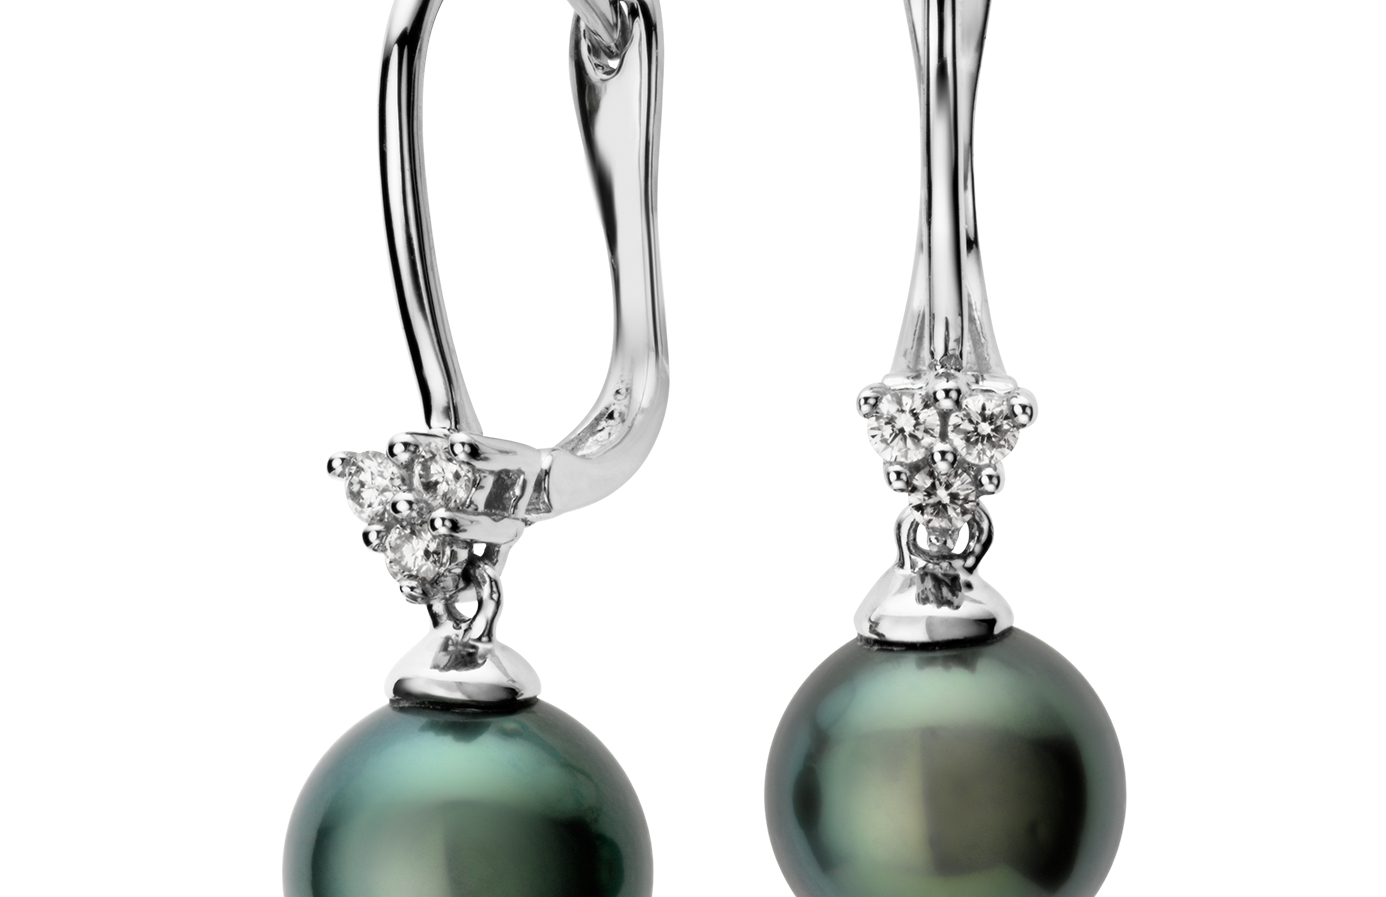 Boucles d'oreilles grappe diamant et perle de culture de Tahiti en or blanc 14 carats (8 mm)